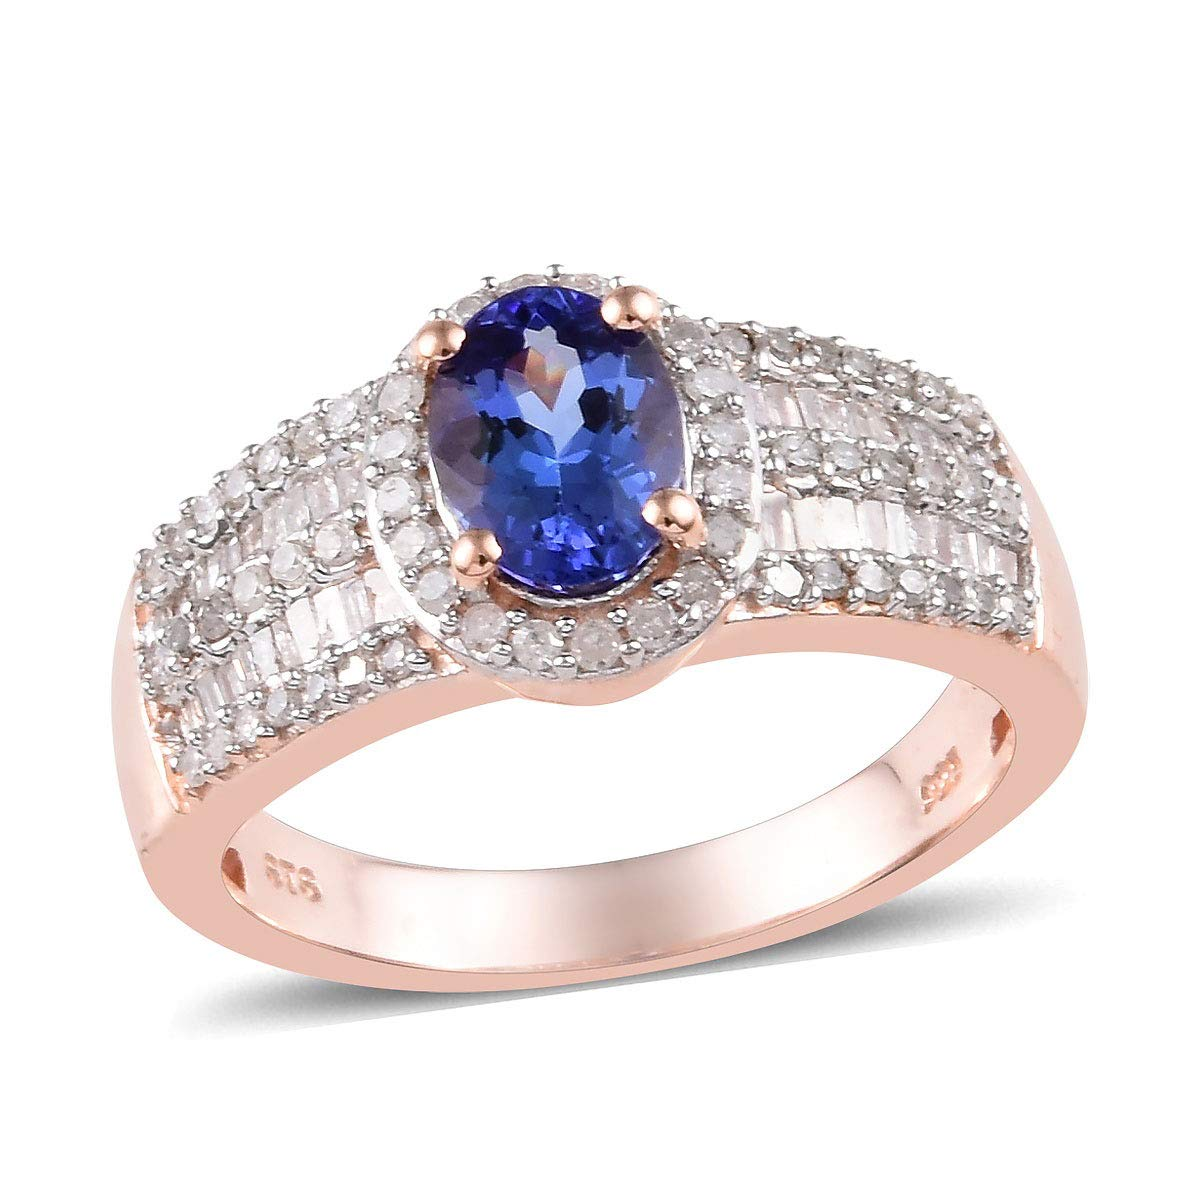 925 Sterling Silver AAA Premium Blue Tanzanite Diamond Baguette Ring Vermeil Rose Gold Women Jewelry Mothers Day Gifts Size 6 H-I Color I3